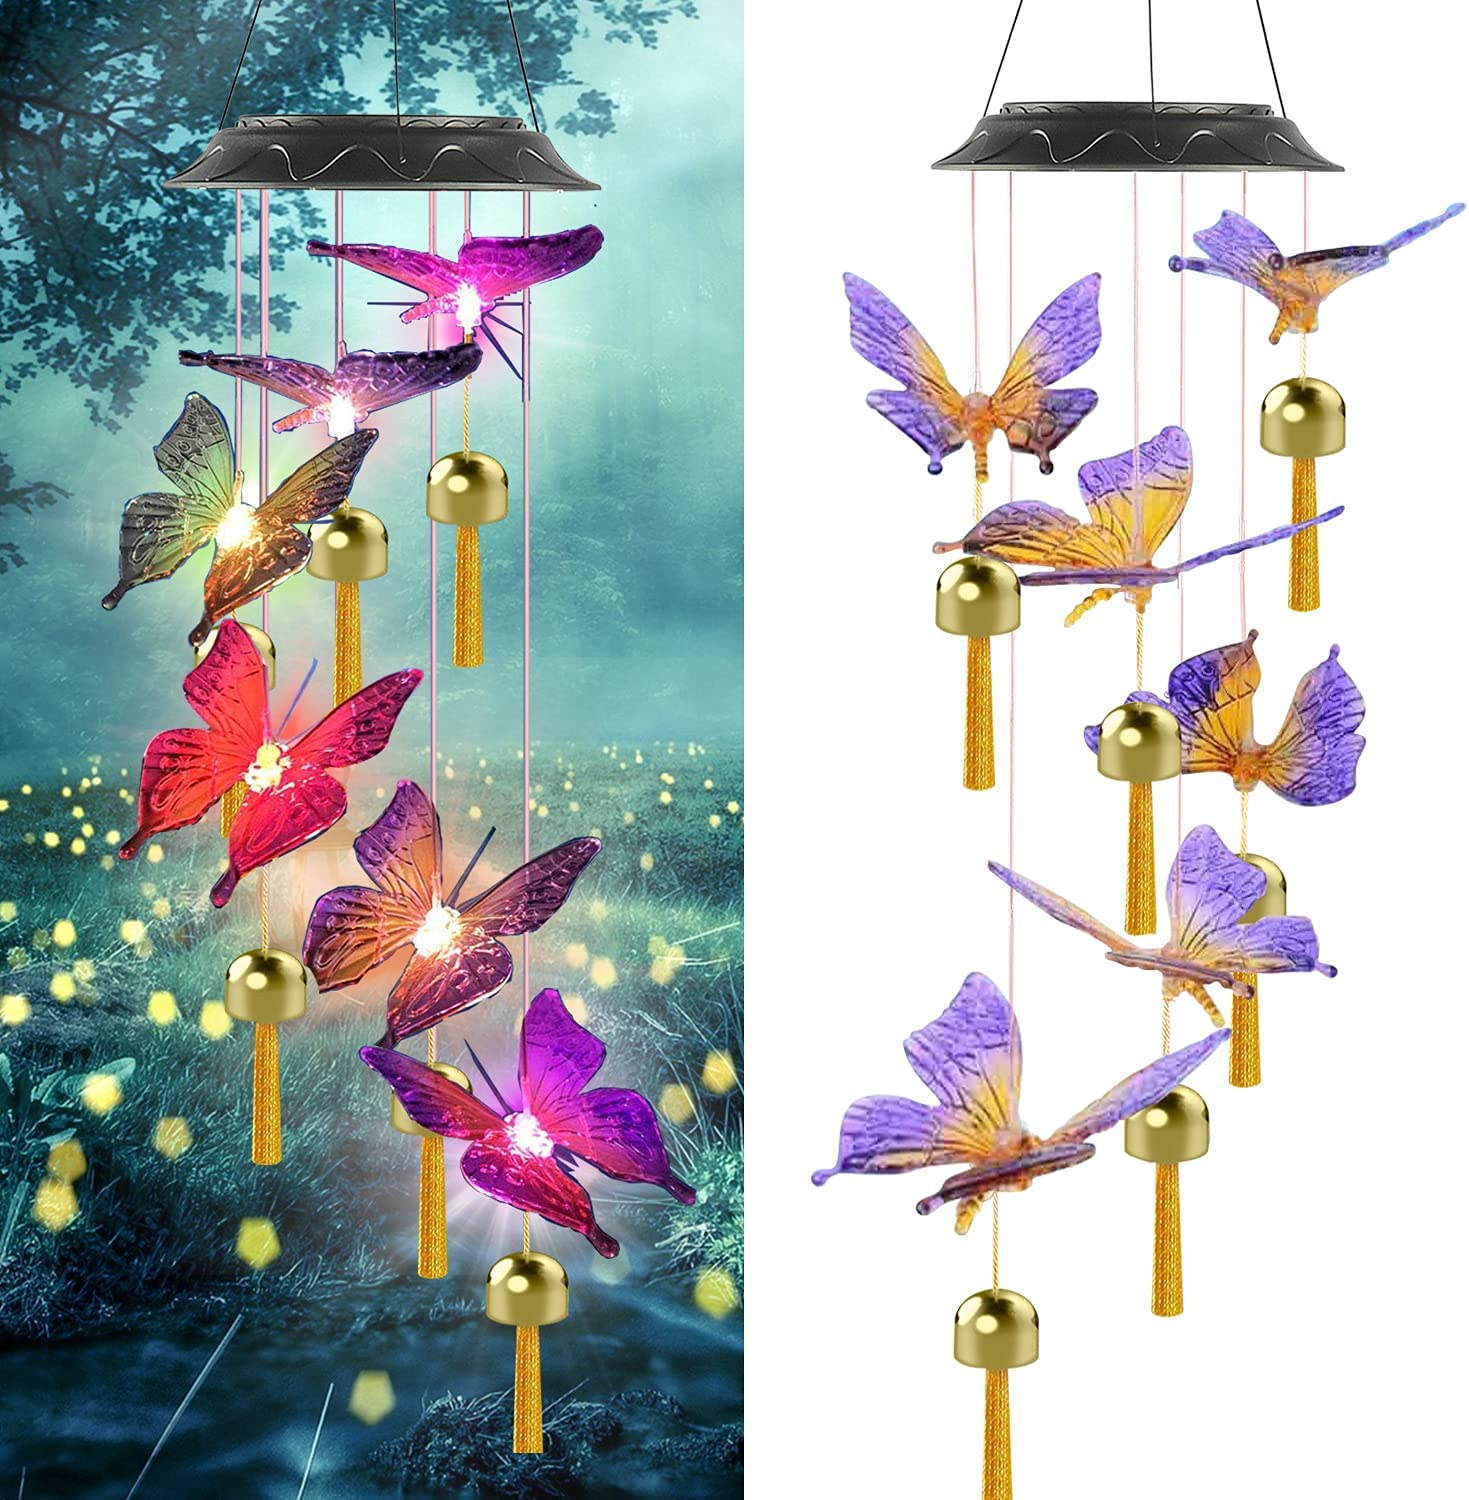 Wind Chimes for Outside, Solar Butterfly Windchimes with Music Metal Tubes, 7 Colors Changing LED Lights, Waterproof Windchimes for Indoor Outdoor, Garden, Patio Decor, Love Memorial, Mom Gift